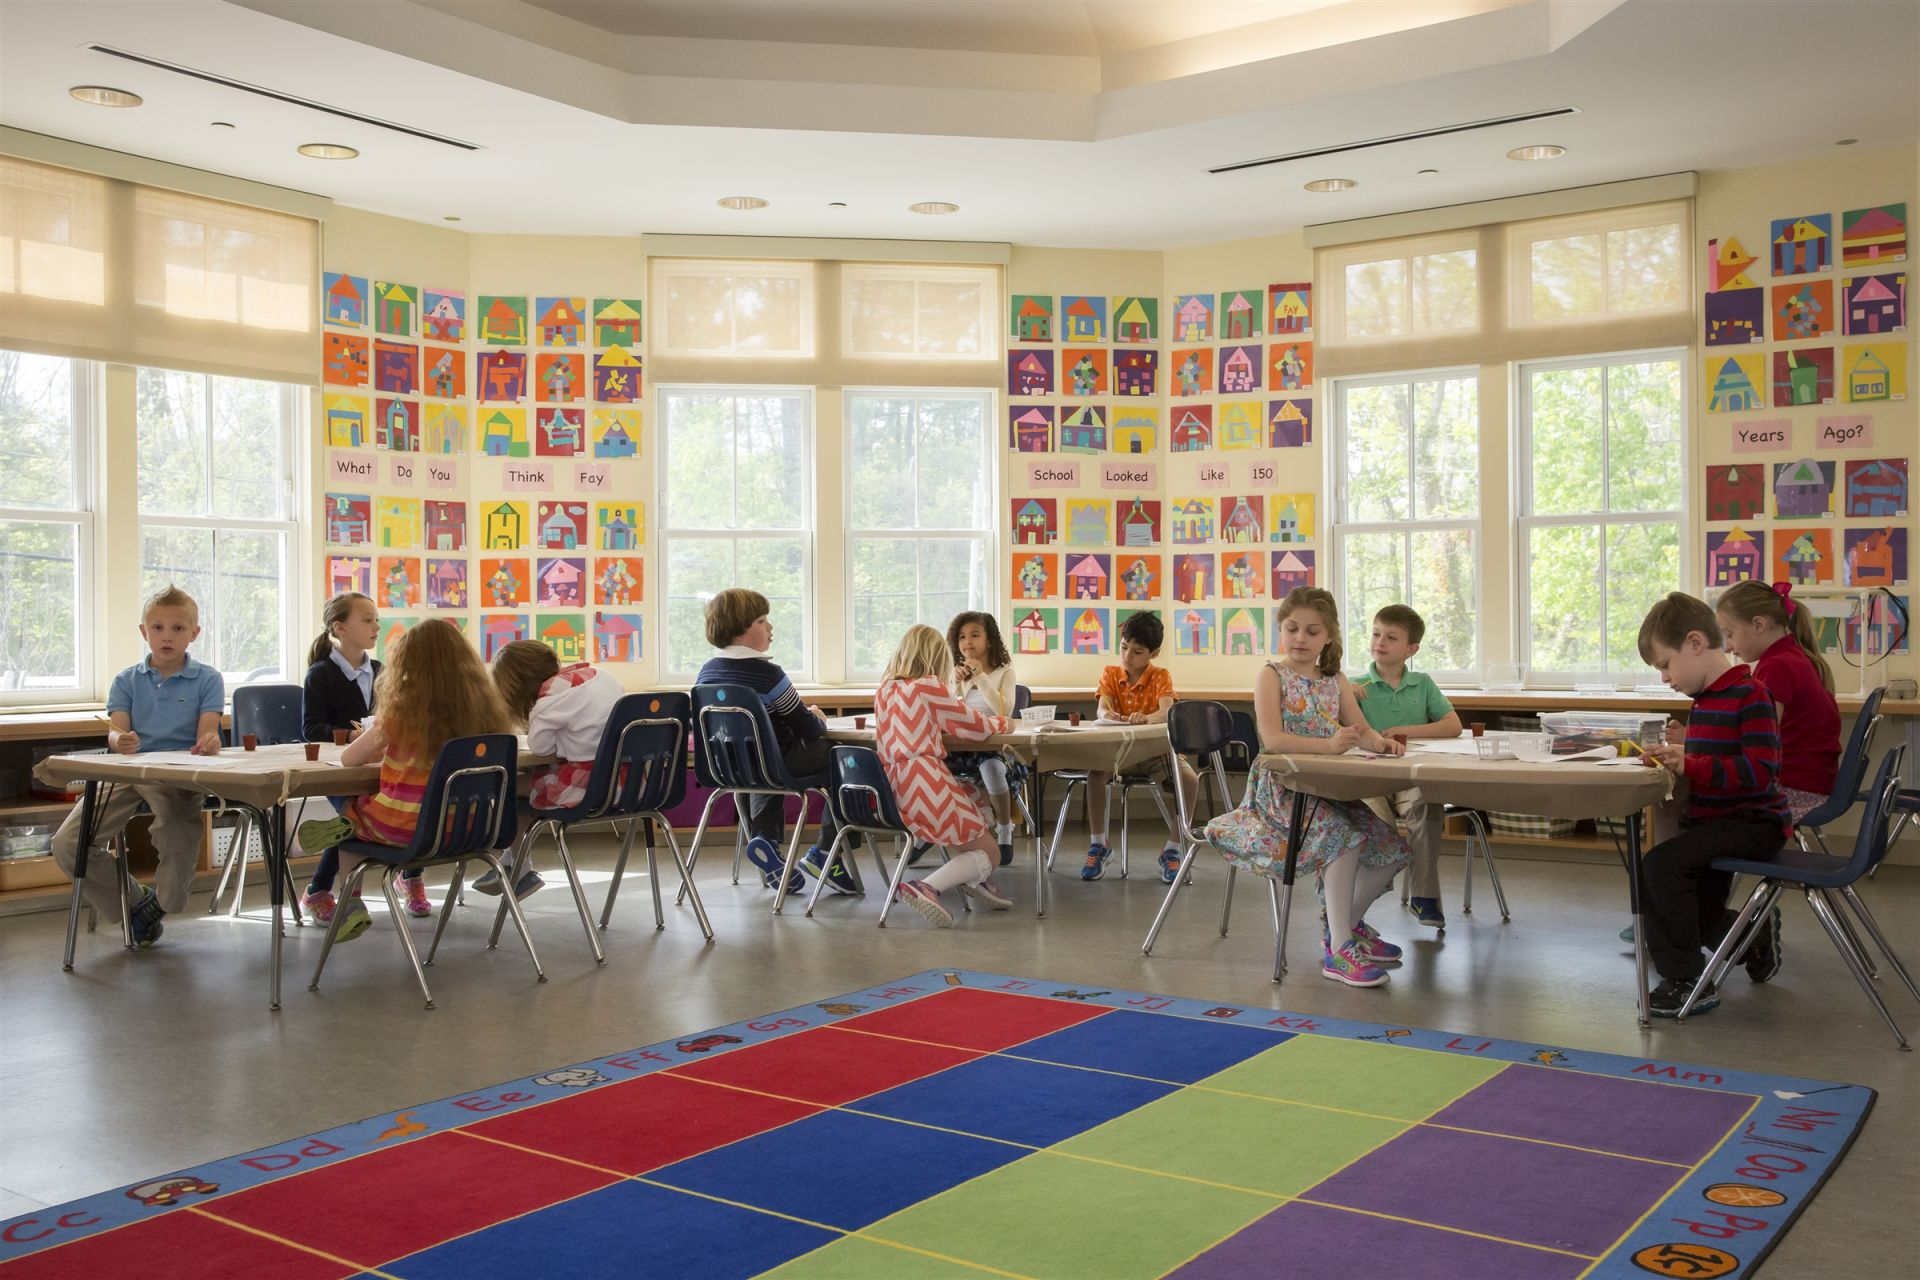 The Primary School's Art/Science room is where our youngest students attend art and science classes. Kindergarten students have art and science as a combined class, where they develop their powers of observation and interpretation.